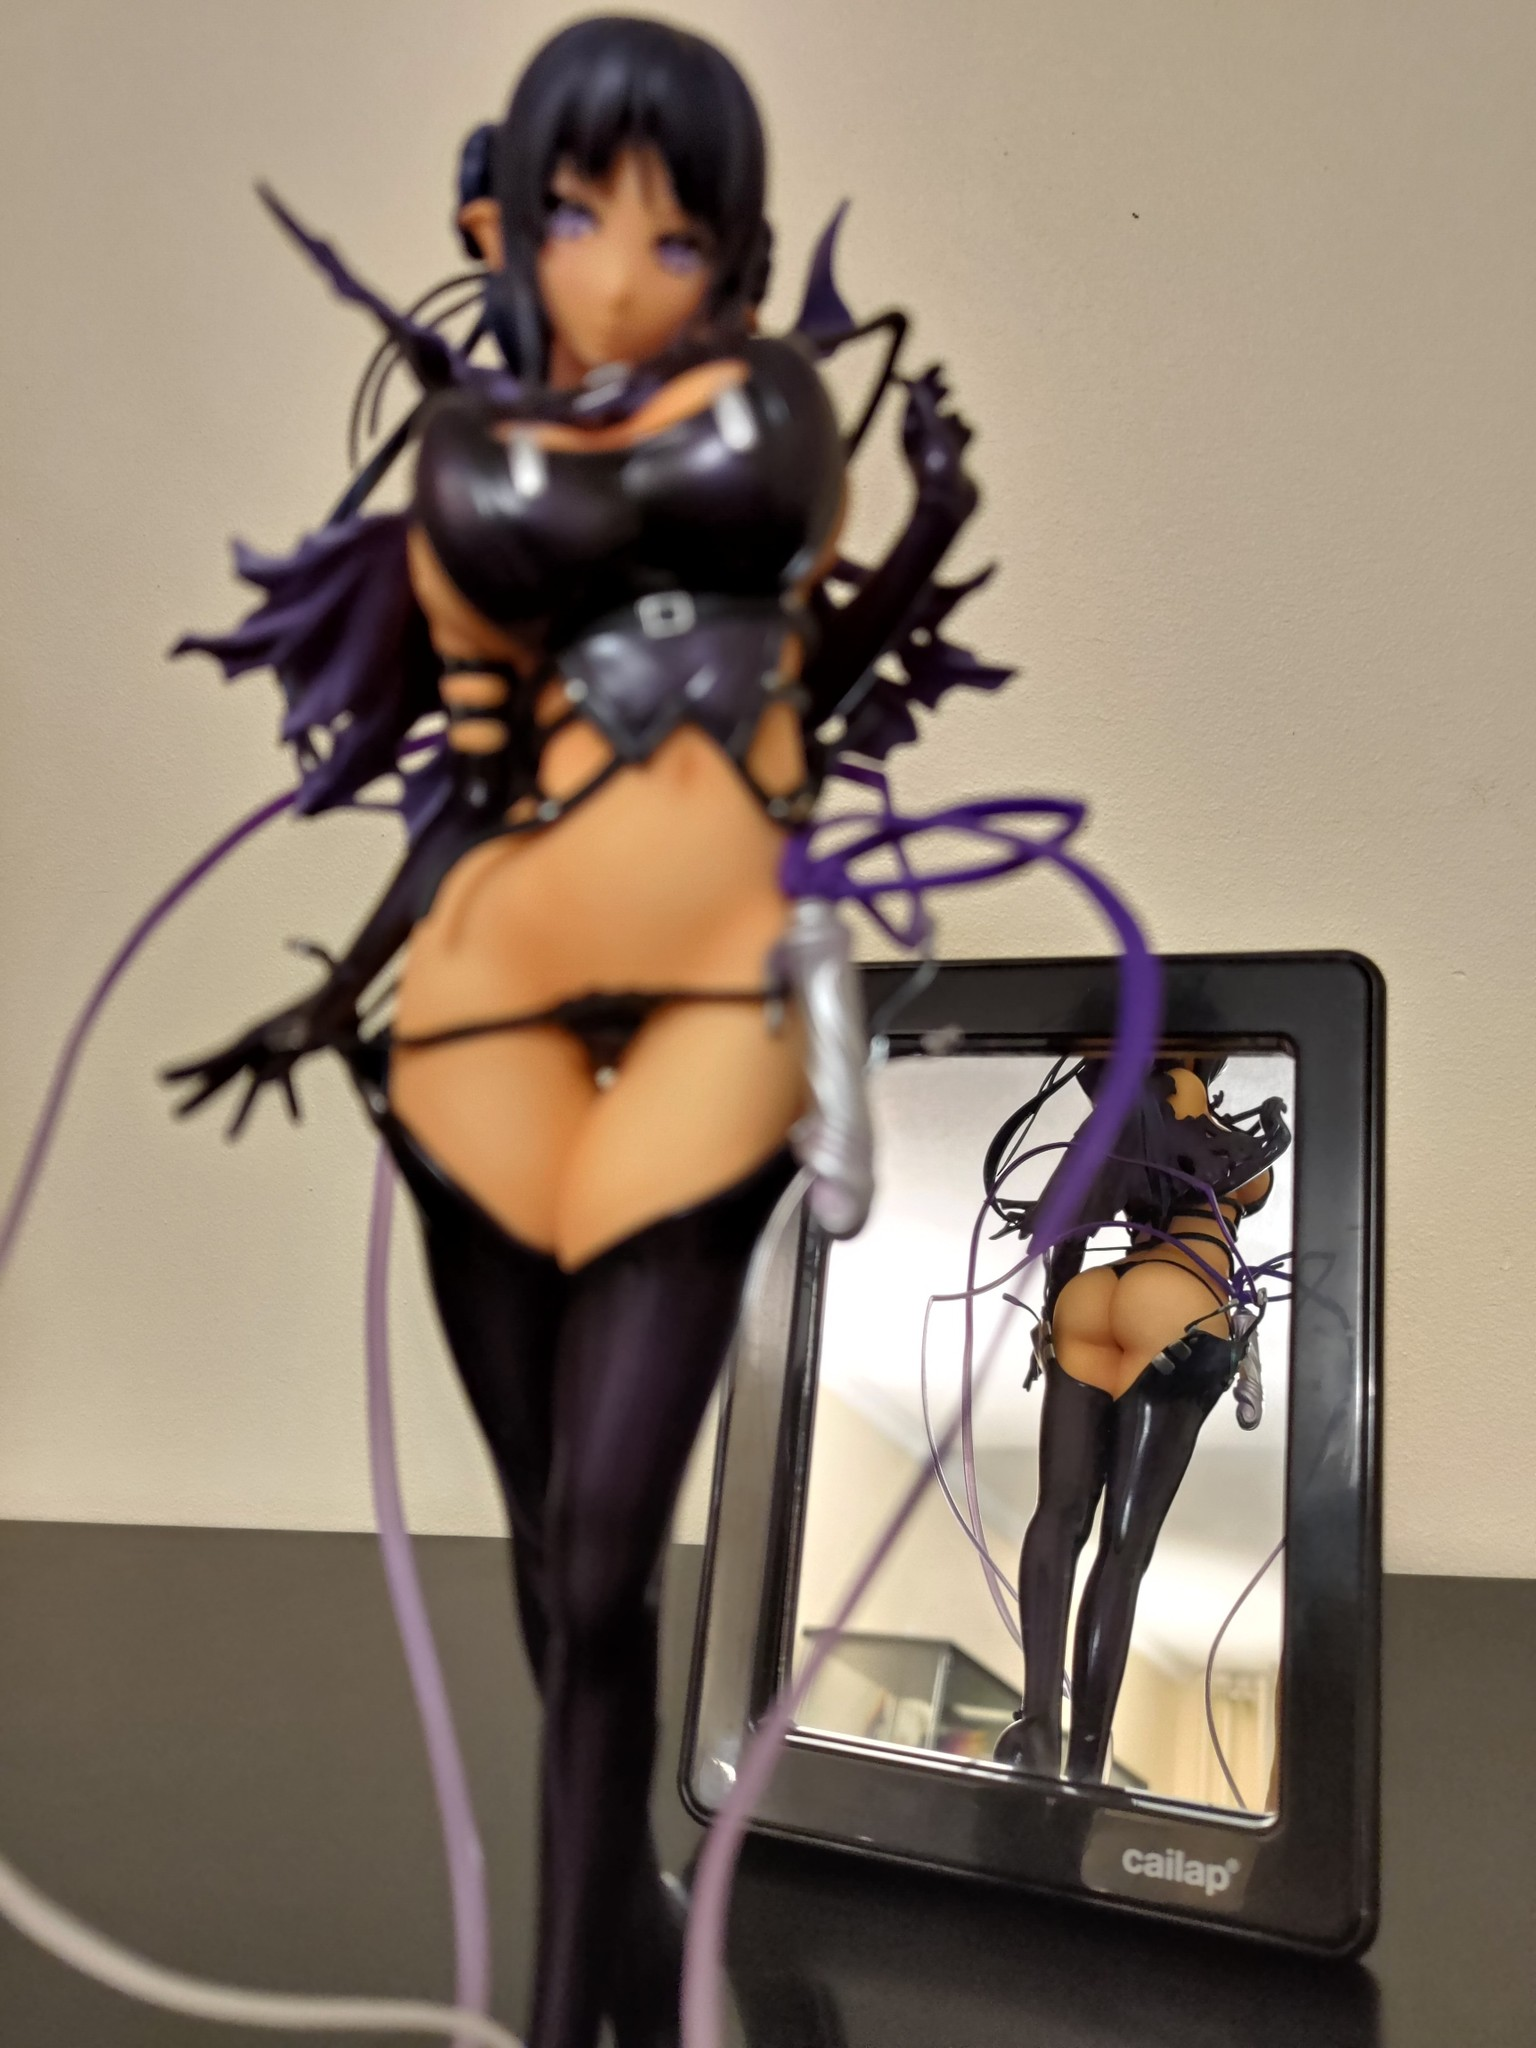 https://static.myfigurecollection.net/upload/pictures/2021/09/11/2848785.jpeg